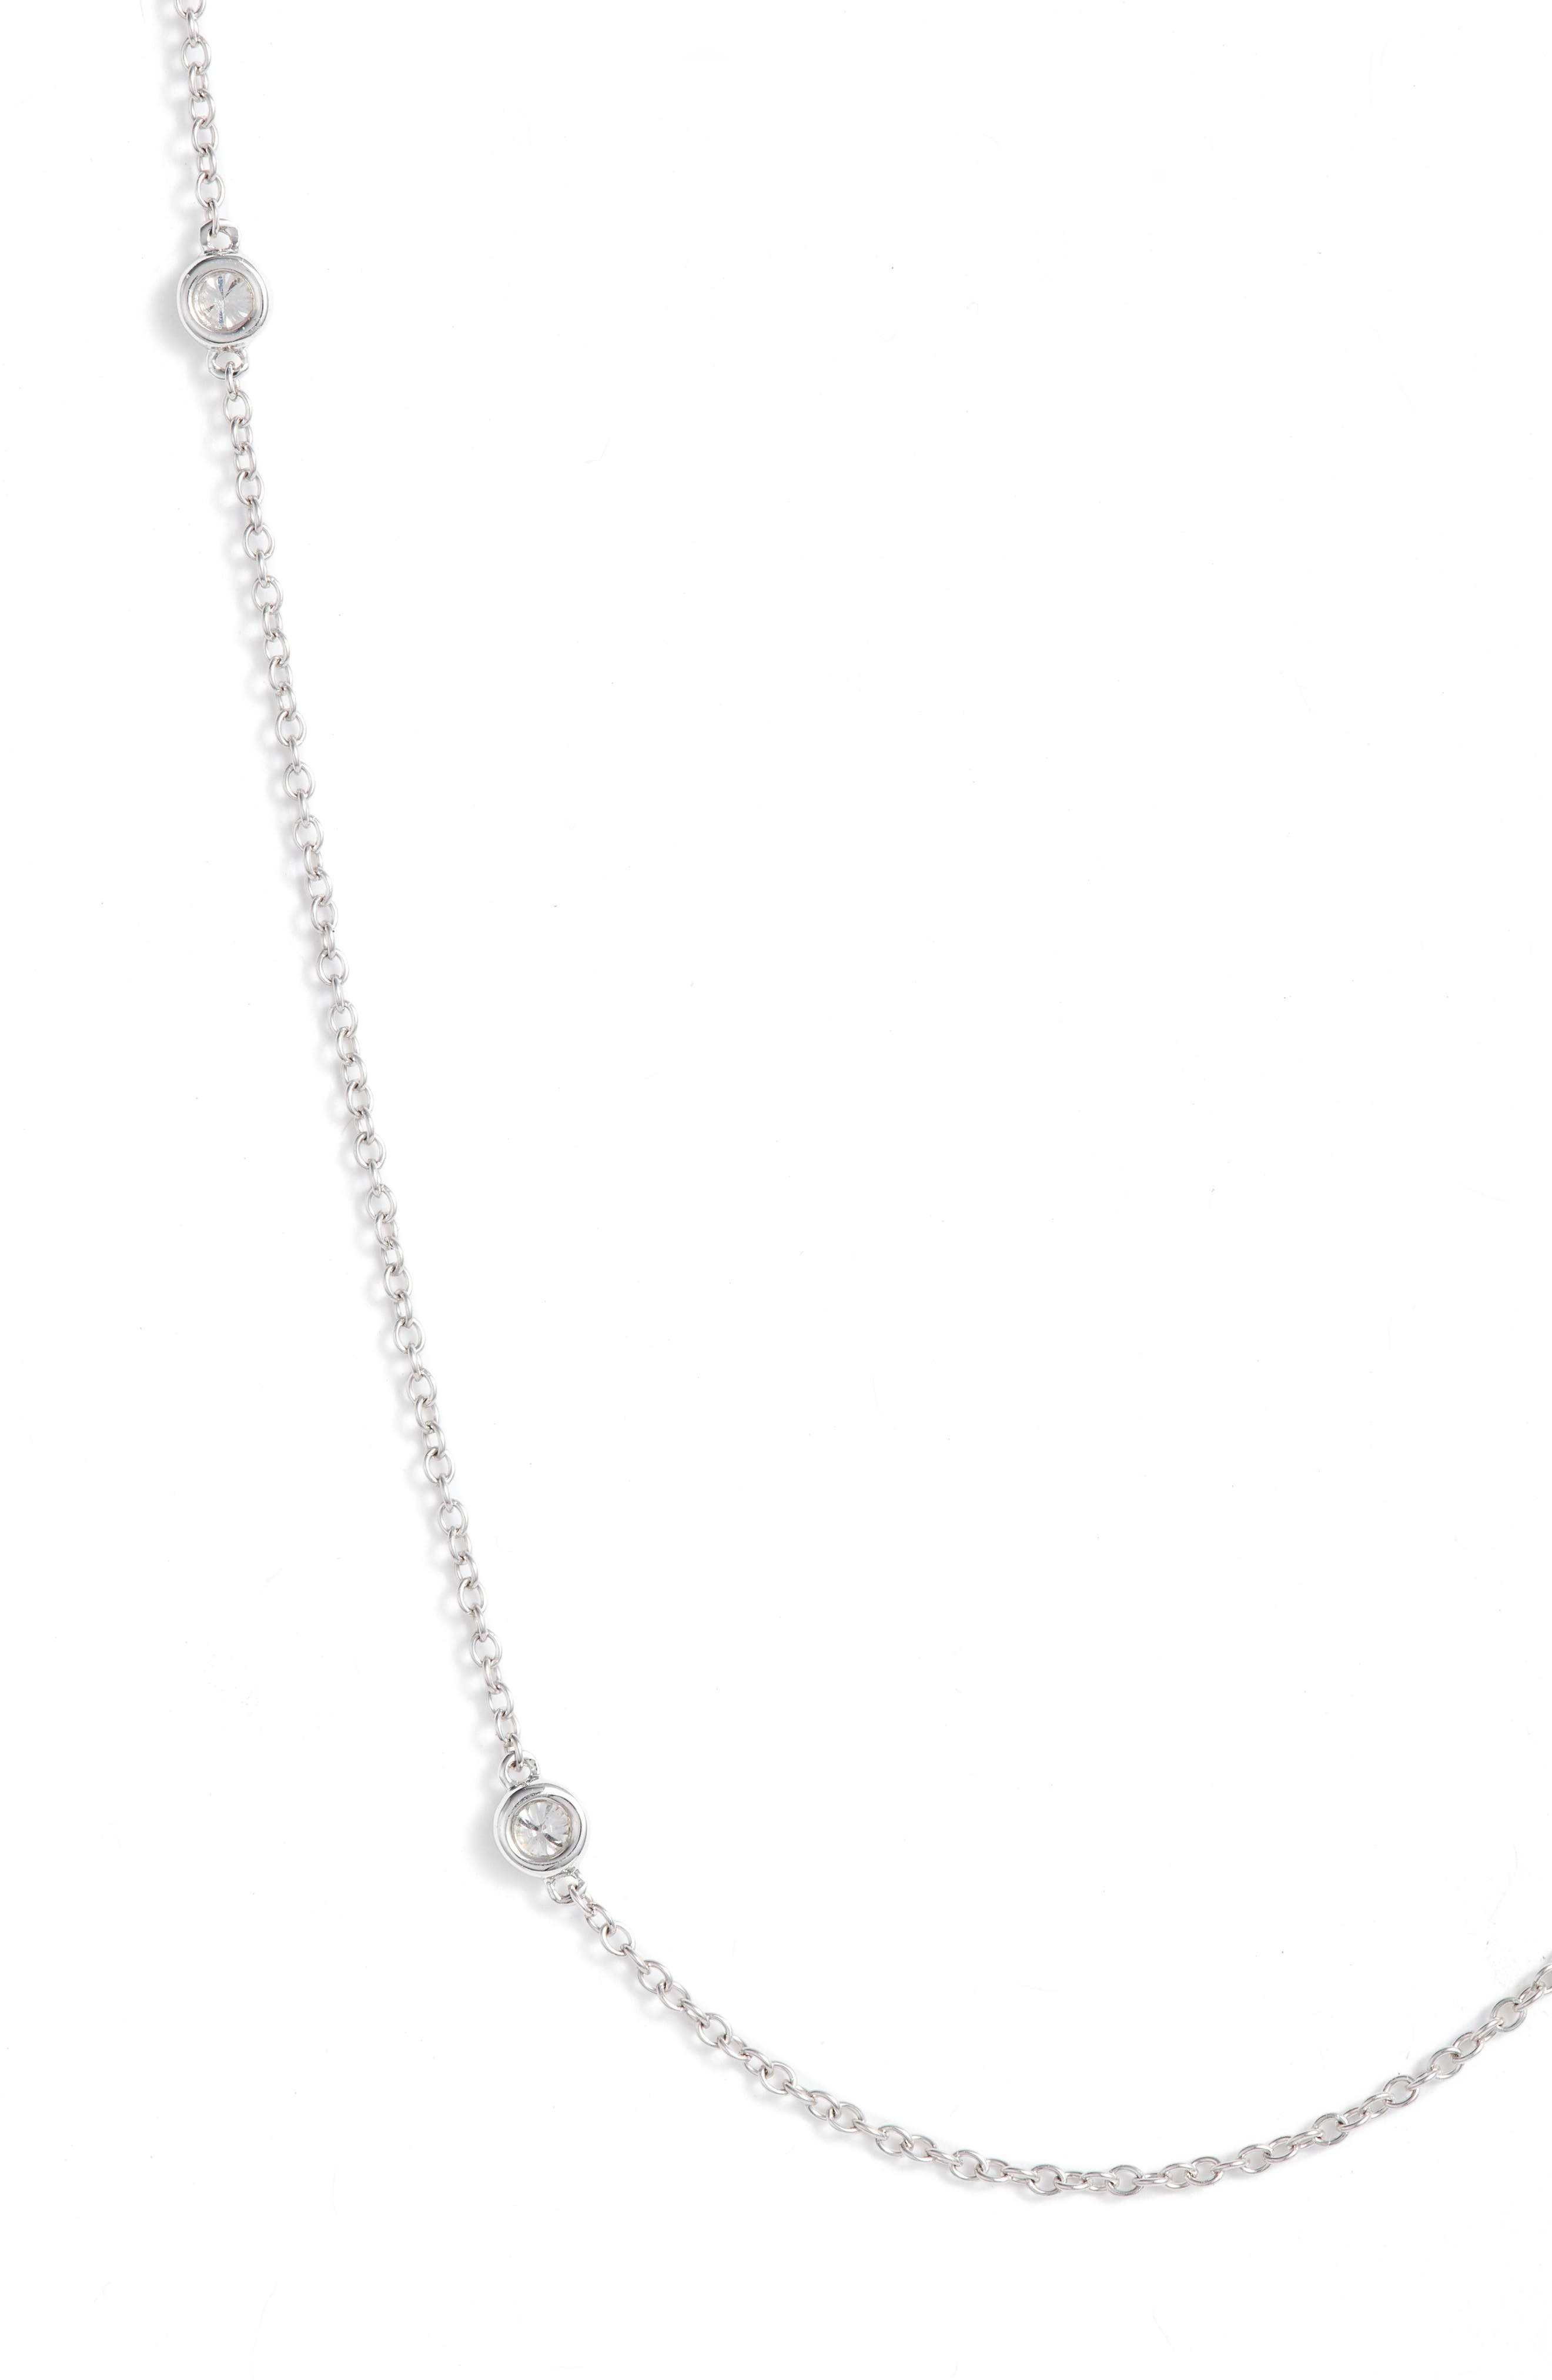 Diamonds by the Yard Necklace,                             Alternate thumbnail 2, color,                             WHITE GOLD